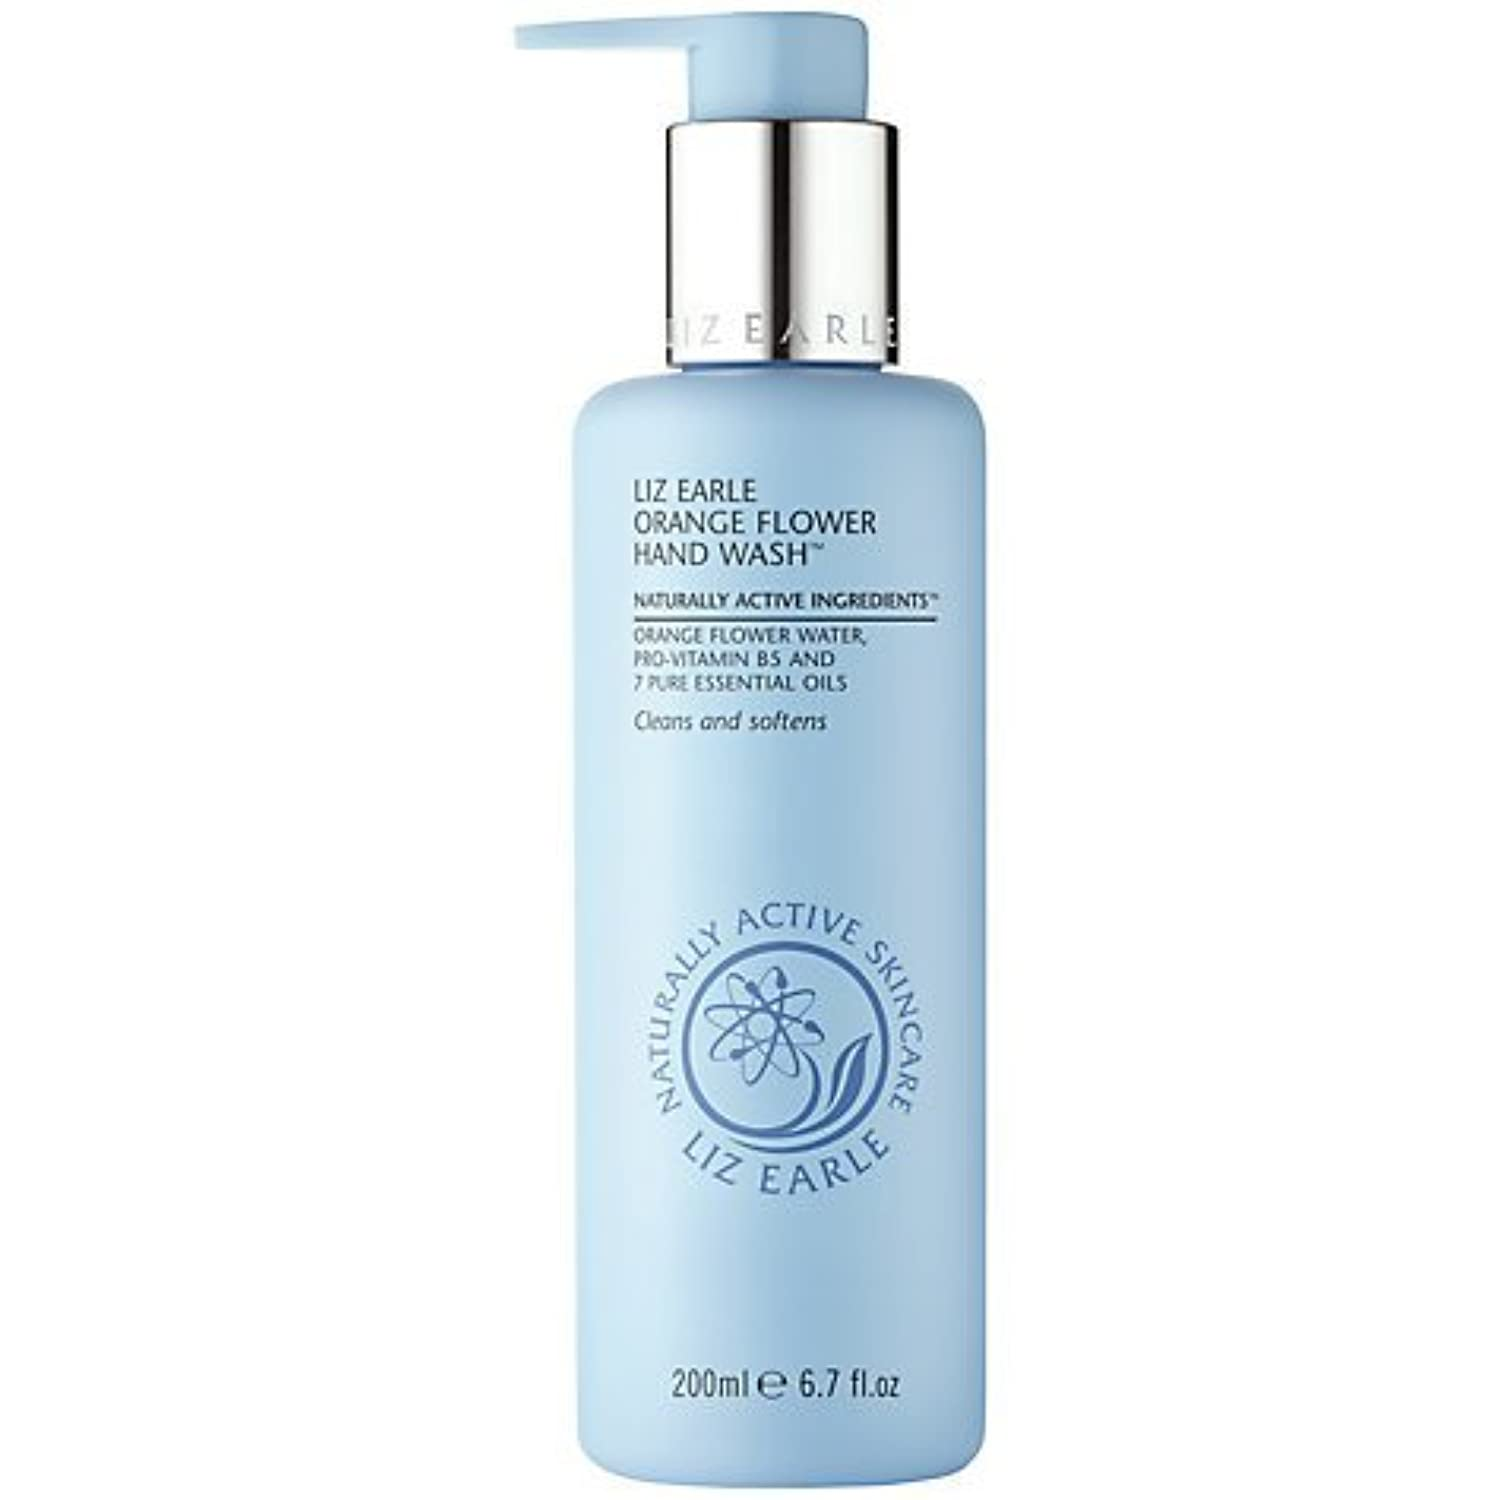 ええブレーキ悪のLiz Earle Orange Flower Hand Wash 200ml by Liz Earle [並行輸入品]